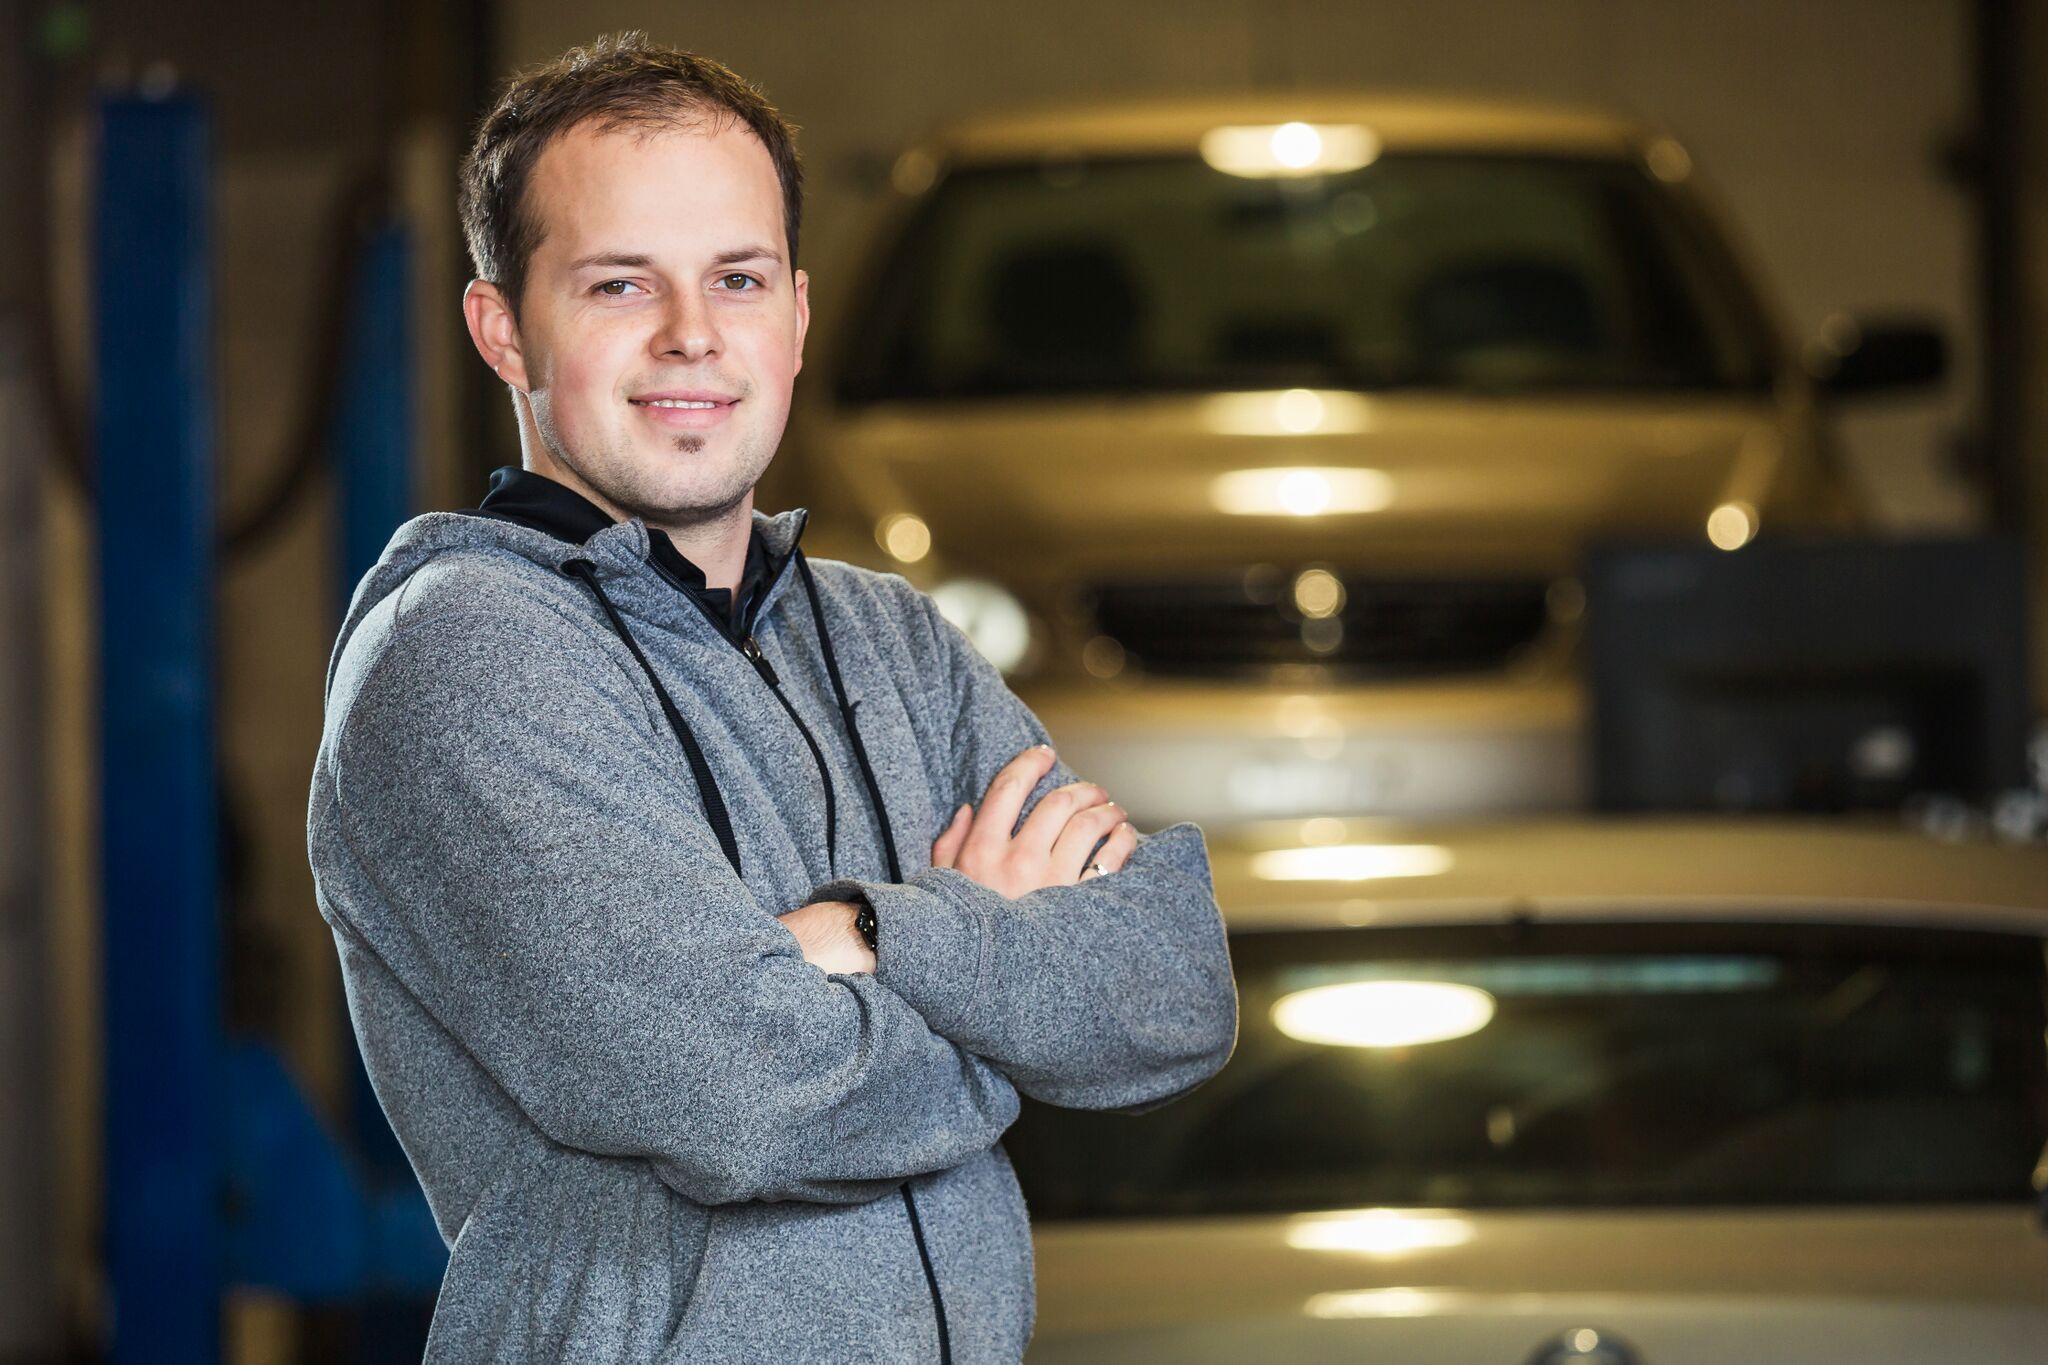 Pavel Kopelev pre owned car sales manager Pavel started as an